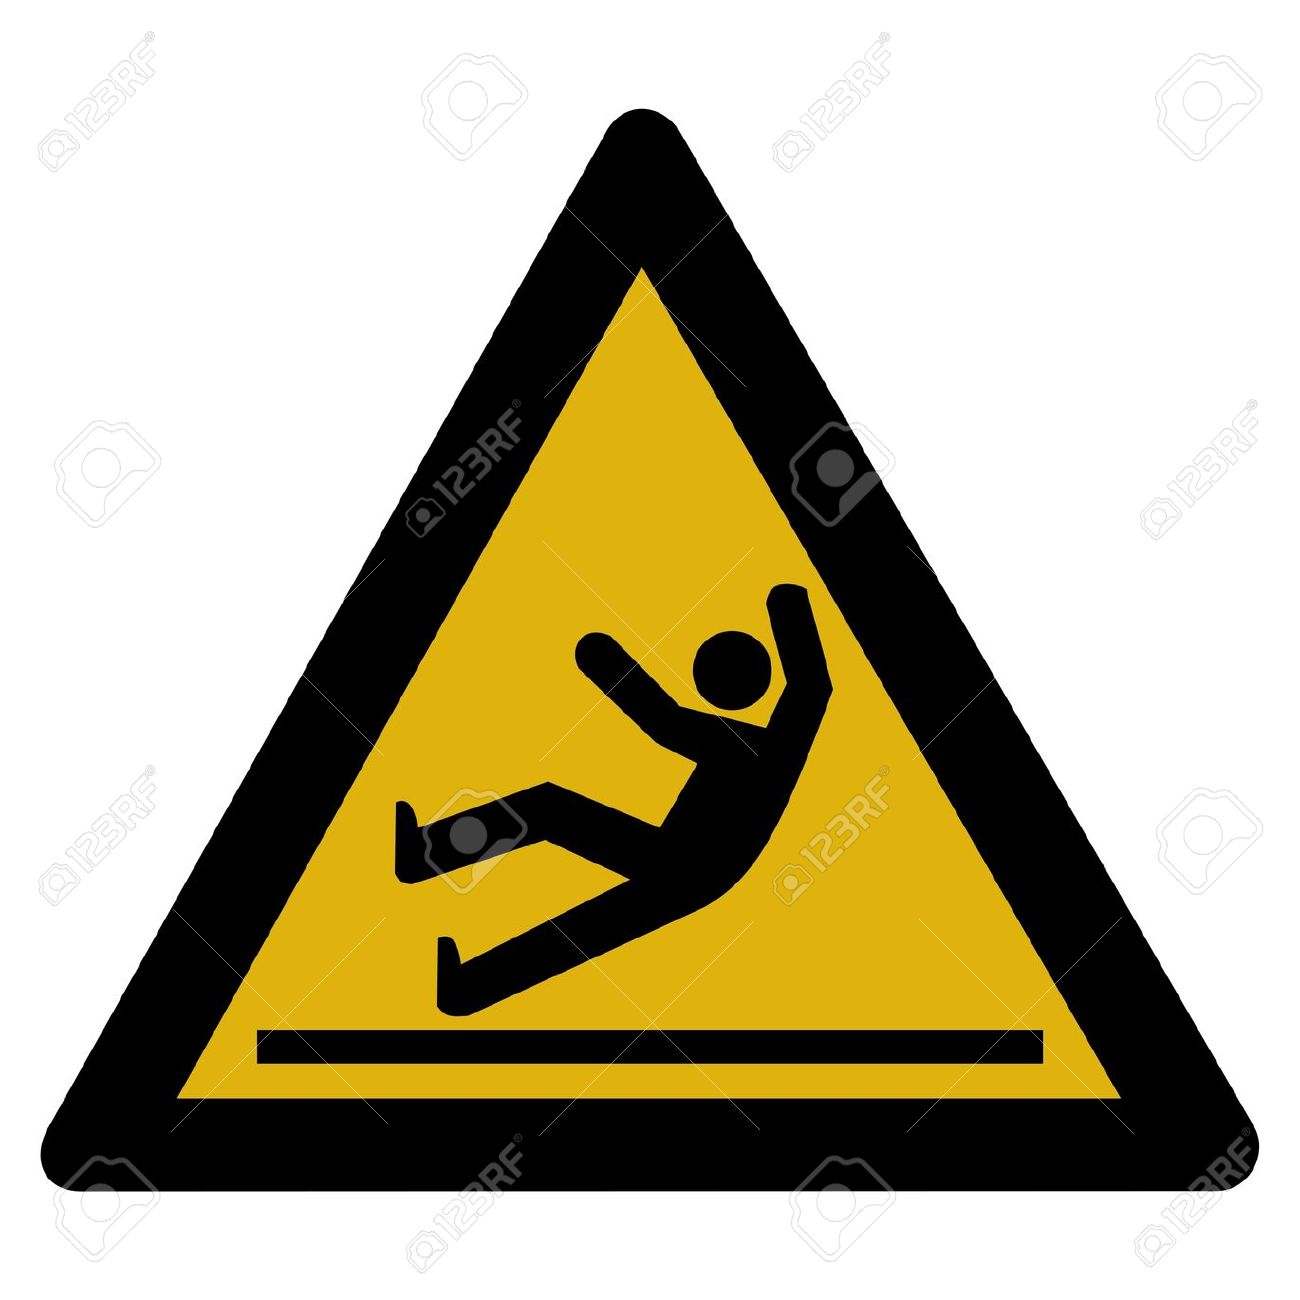 Risk of slipping clipart 20 free Cliparts  Download